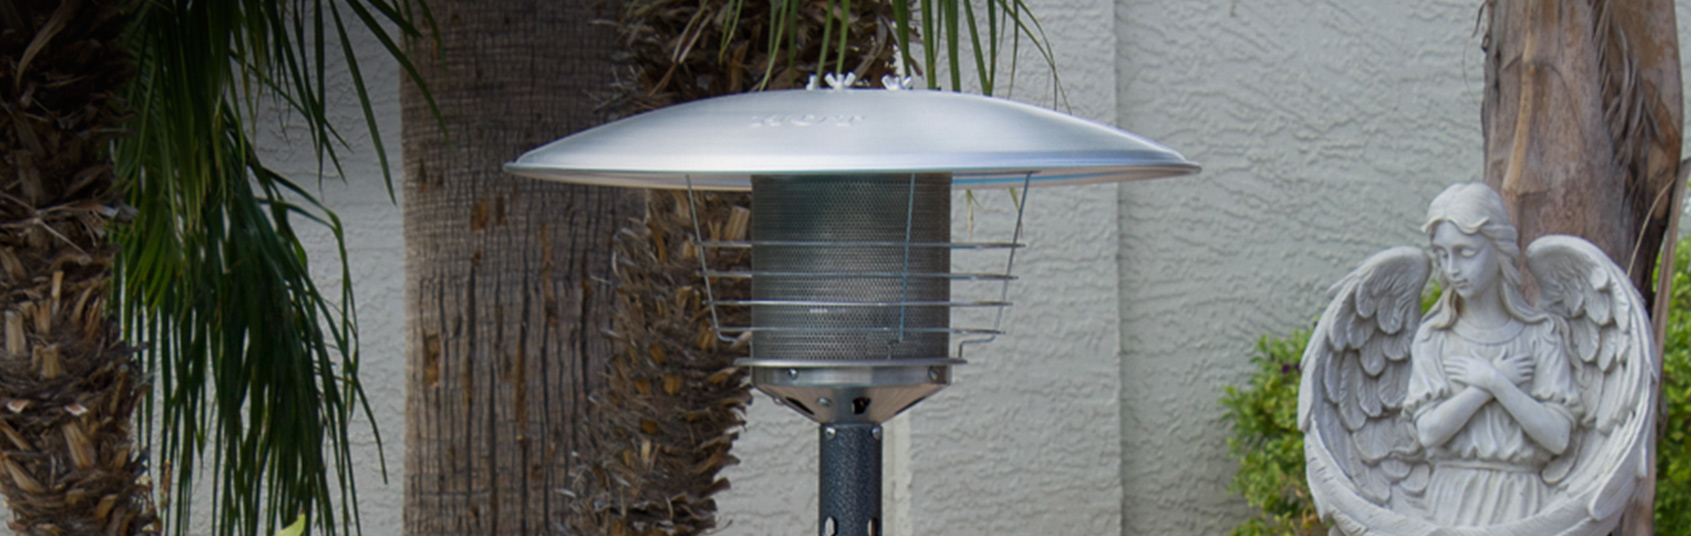 Captivating Outdoor Heaters